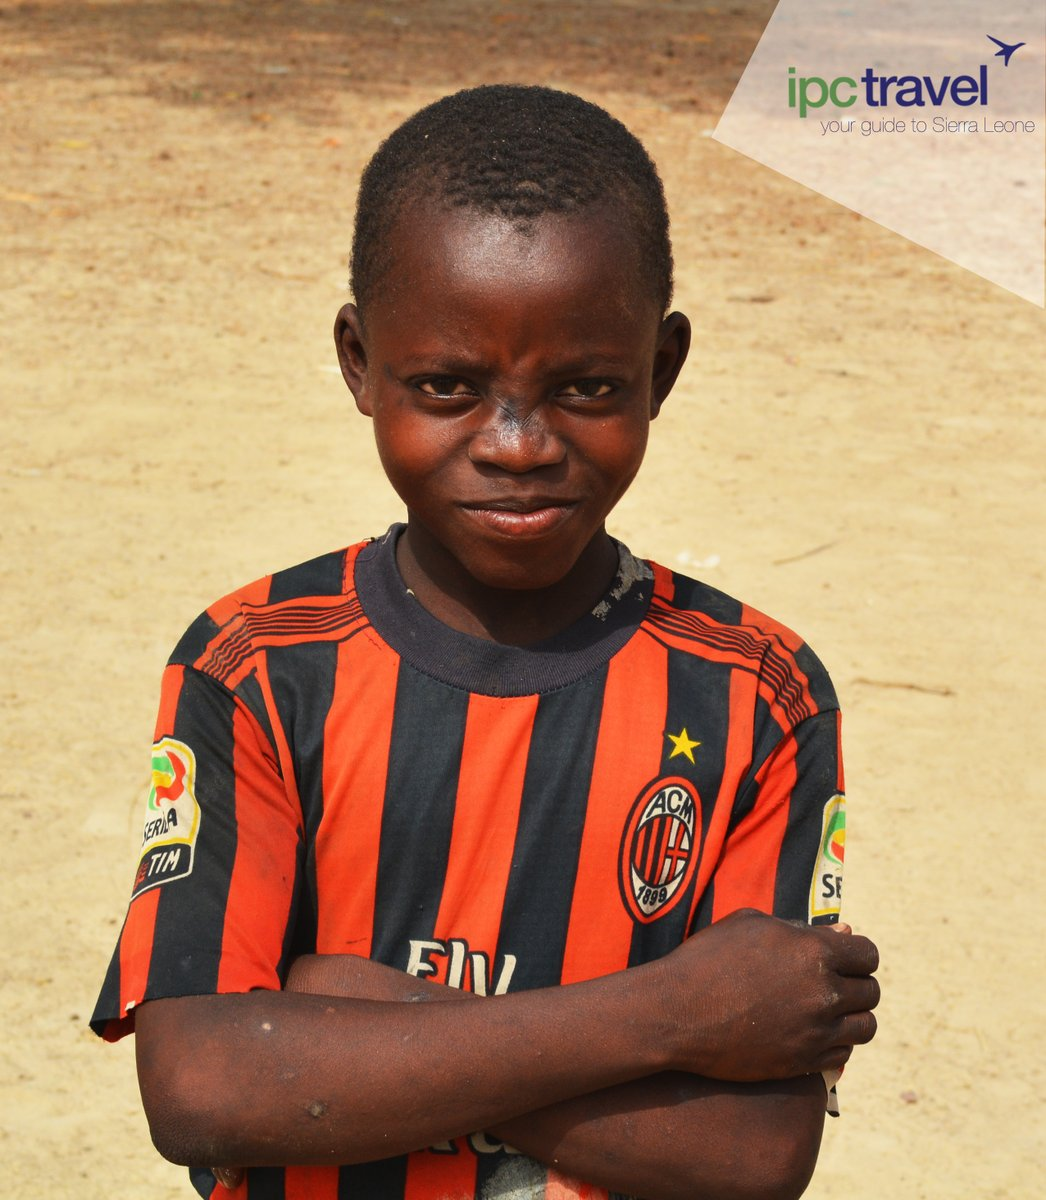 """Ambition is enthusiasm with a purpose."" - Frank Tyger This little boy believes he will become the best footballer Sierra Leone has seen and his face speaks determination and persistence #IPCTravelAgency #yourguidetosierraleone #SierraLeone #TassoIsland  #Salone #SaloneTwitter https://t.co/TILY6GUxuu"